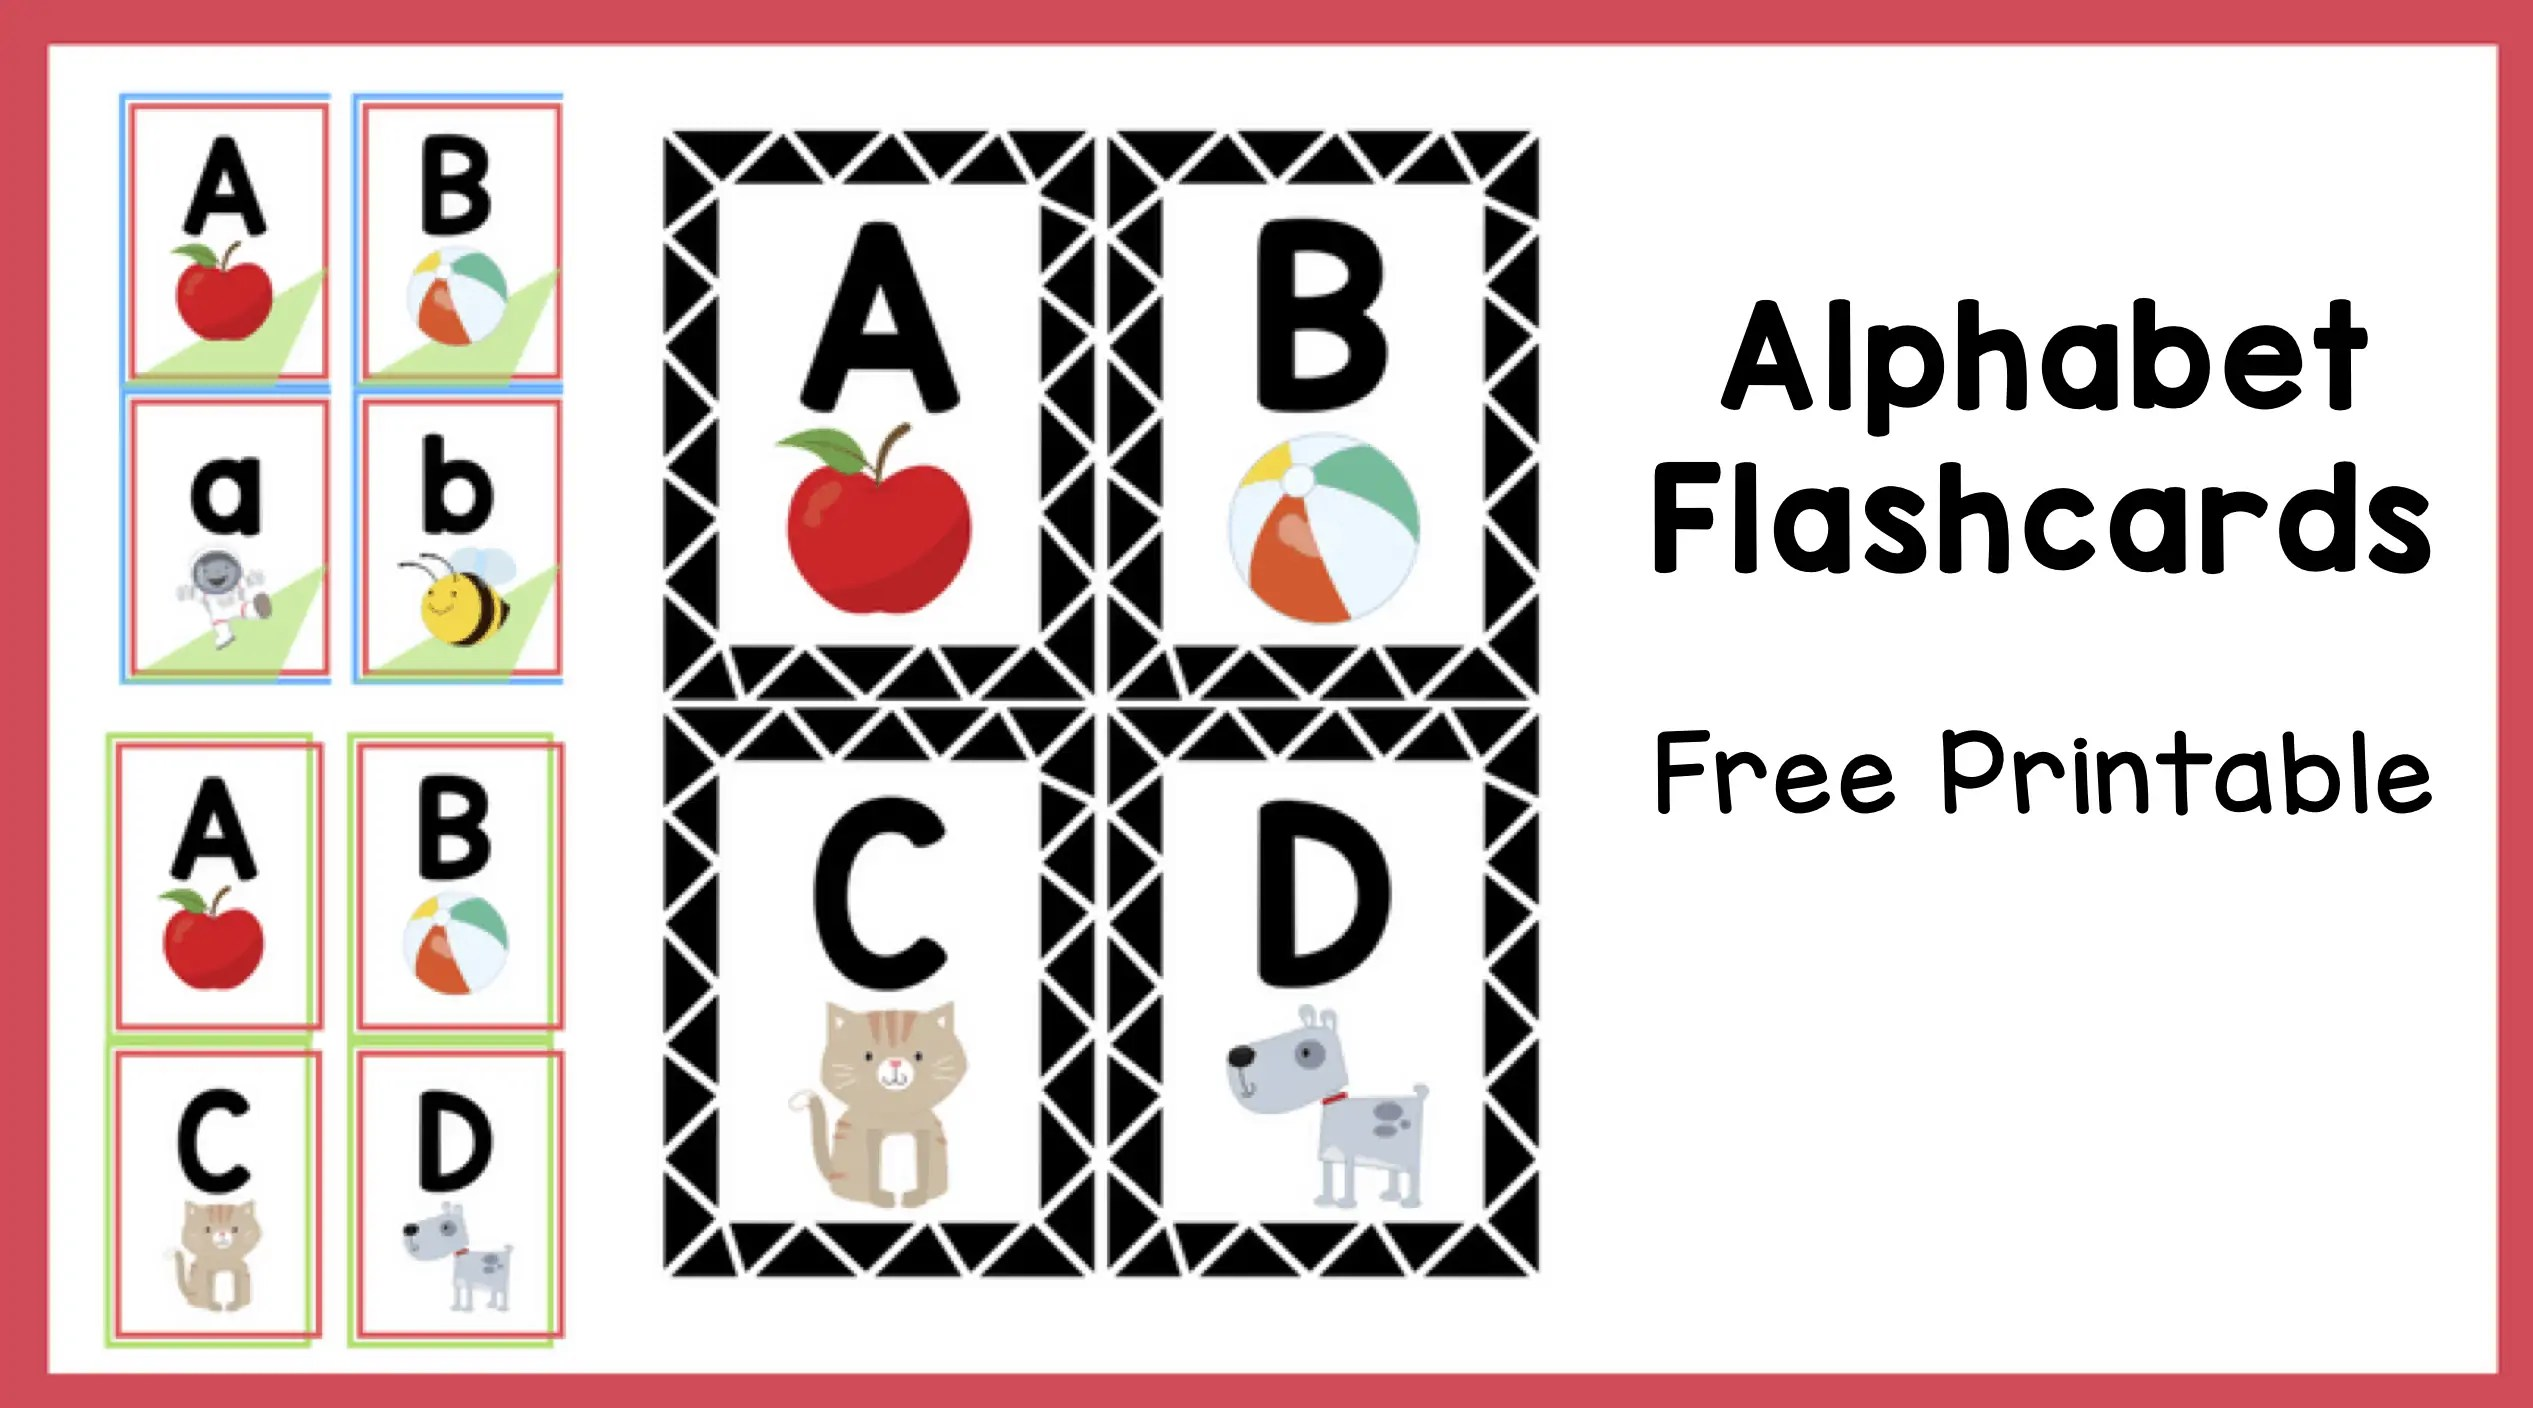 image regarding Free Printable Abc Flash Cards named Alphabet Flashcards Free of charge Printable - The Training Aunt